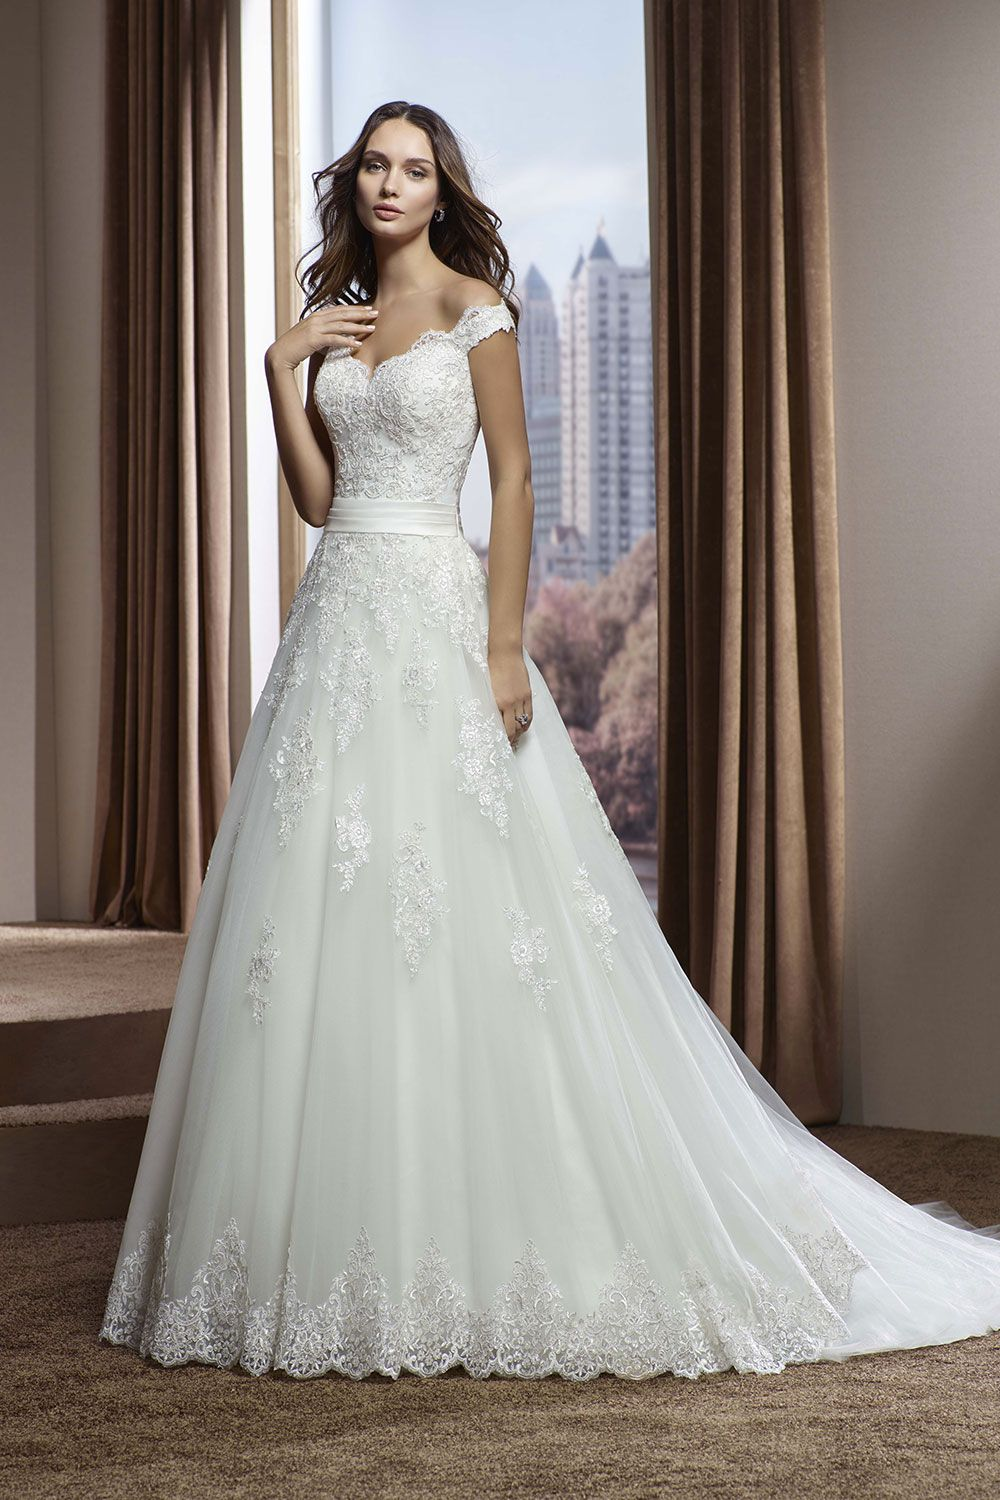 Pin By Marguerite Thompson On Say Yes To The Dress Wedding